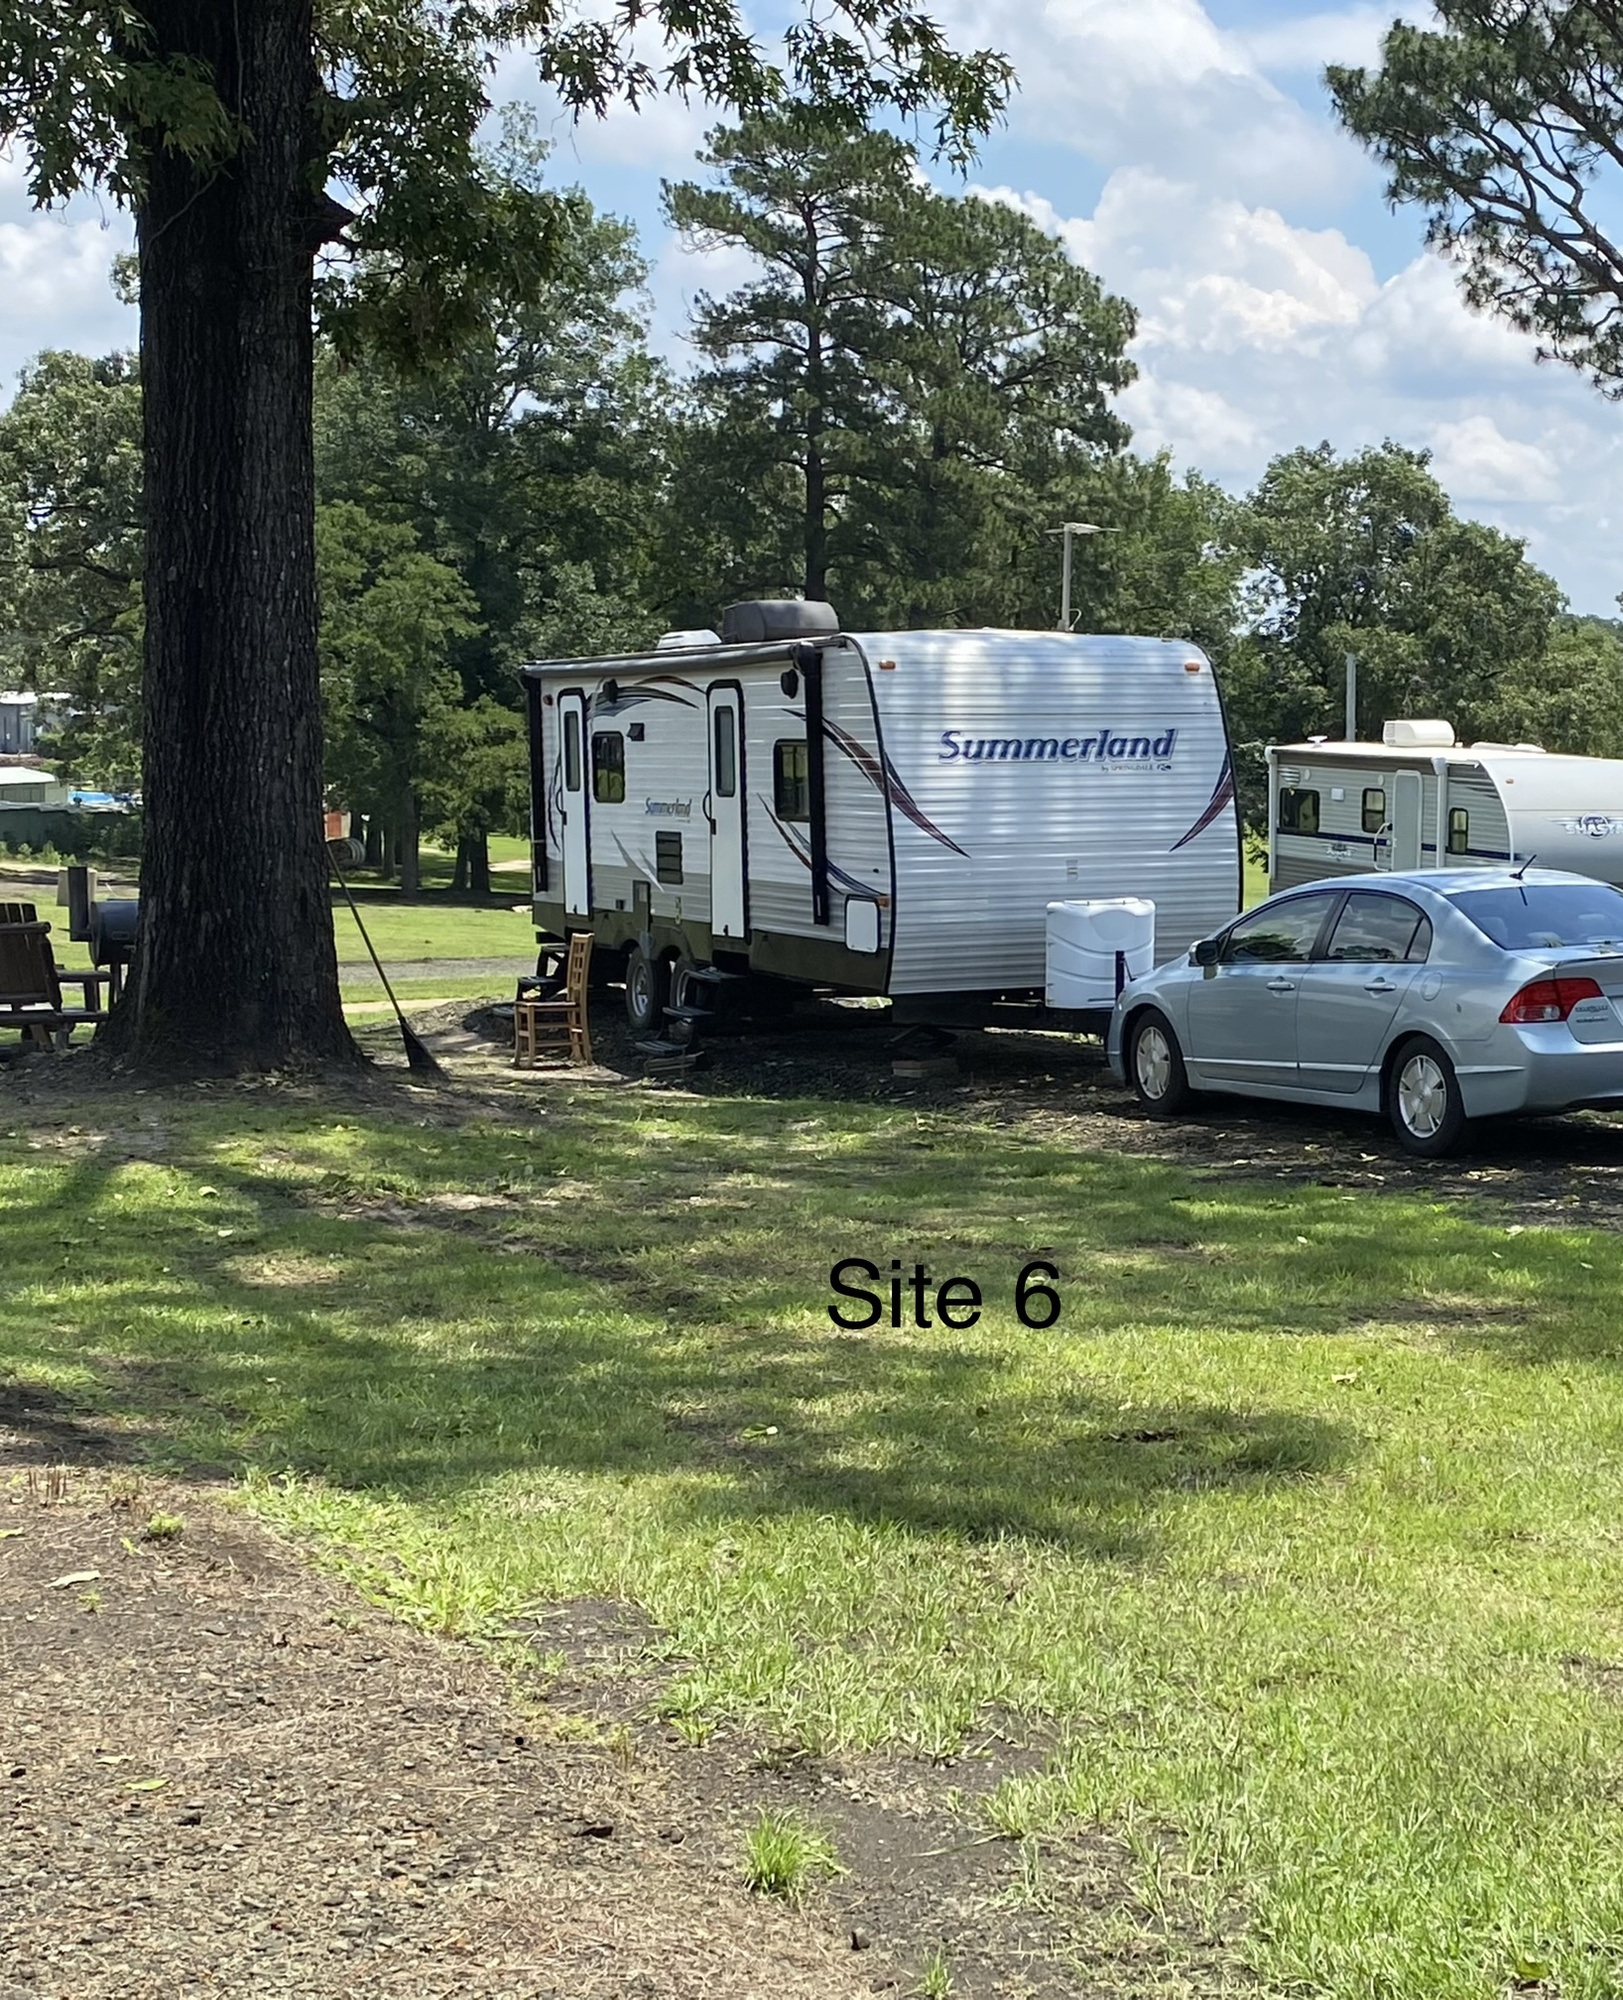 Image for 06) RV back in